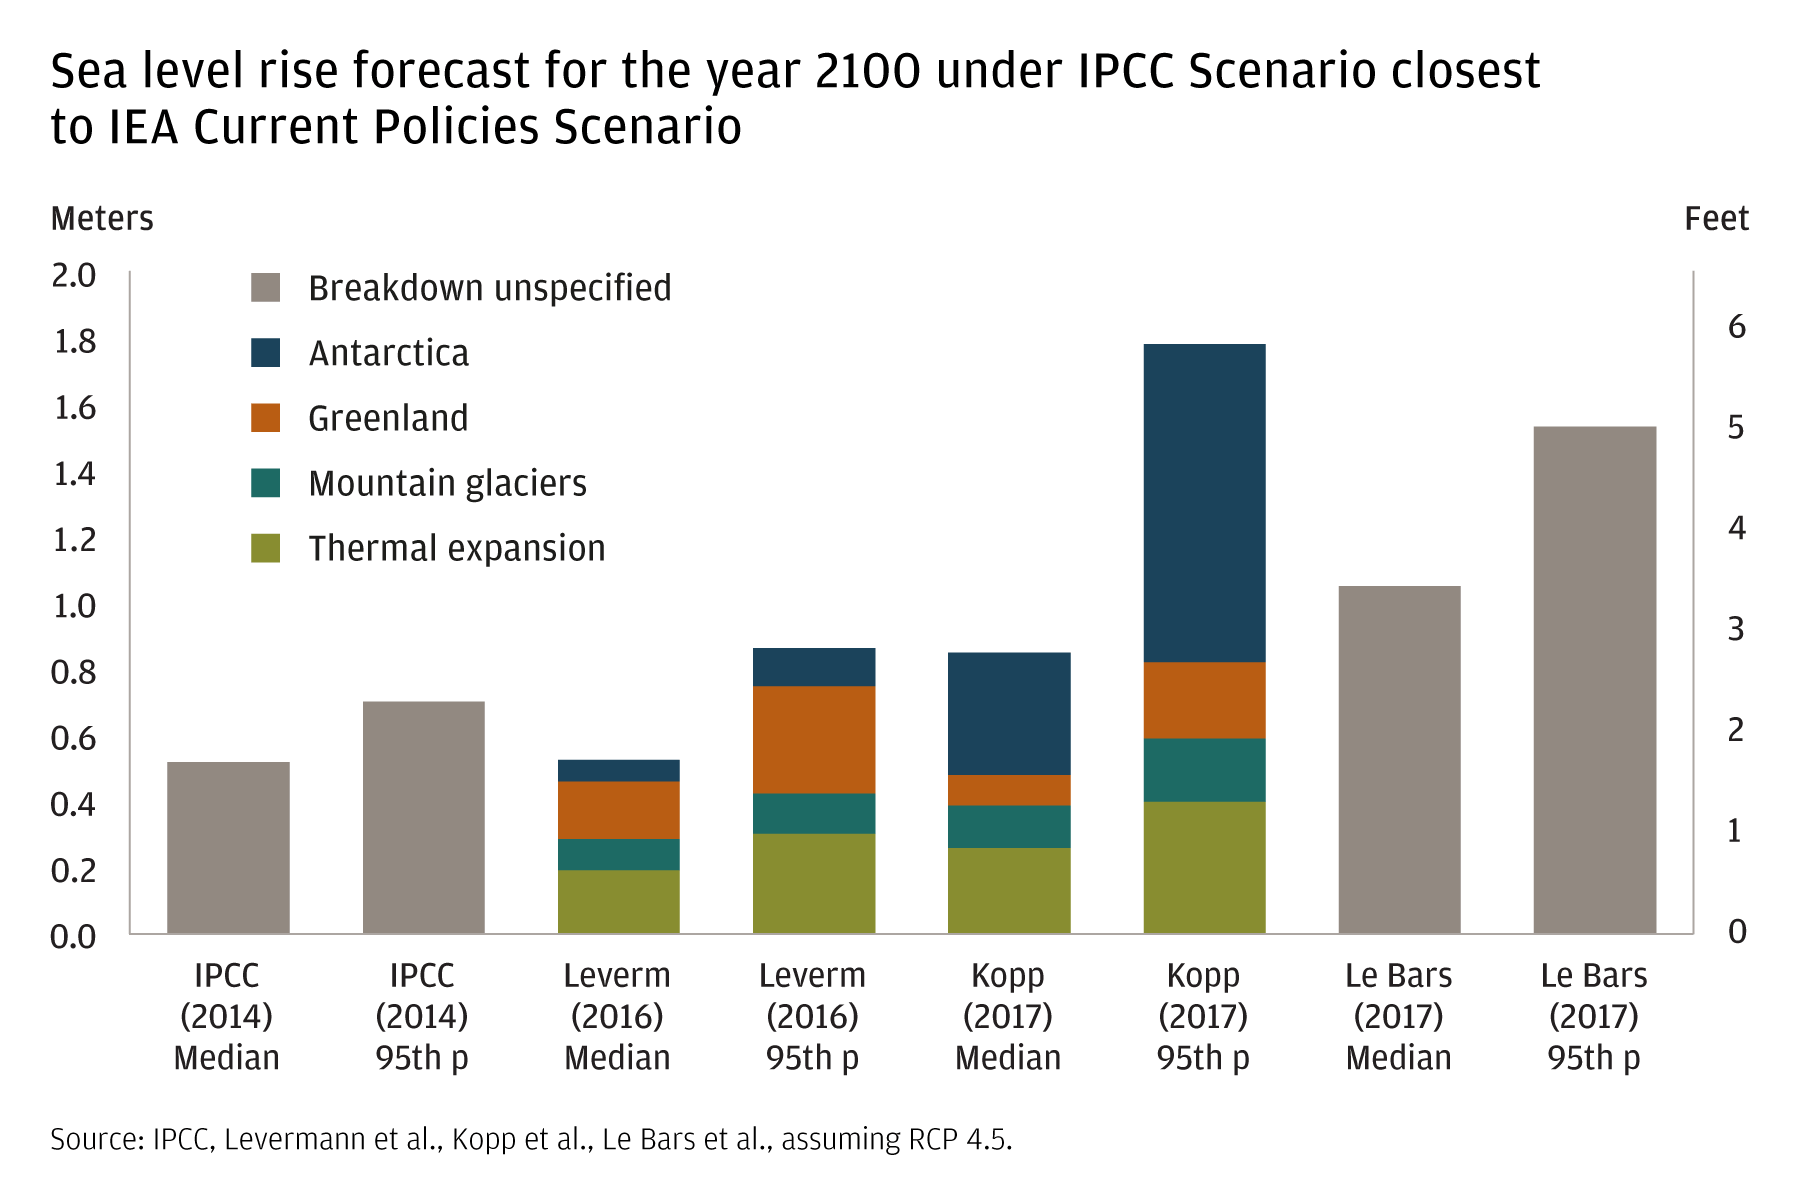 This bar chart shows expected sea level rise by the year 2100 according to different models. Depending on the model, total estimated sea level rise ranges between a low of below 2 feet and a high around 6 feet.